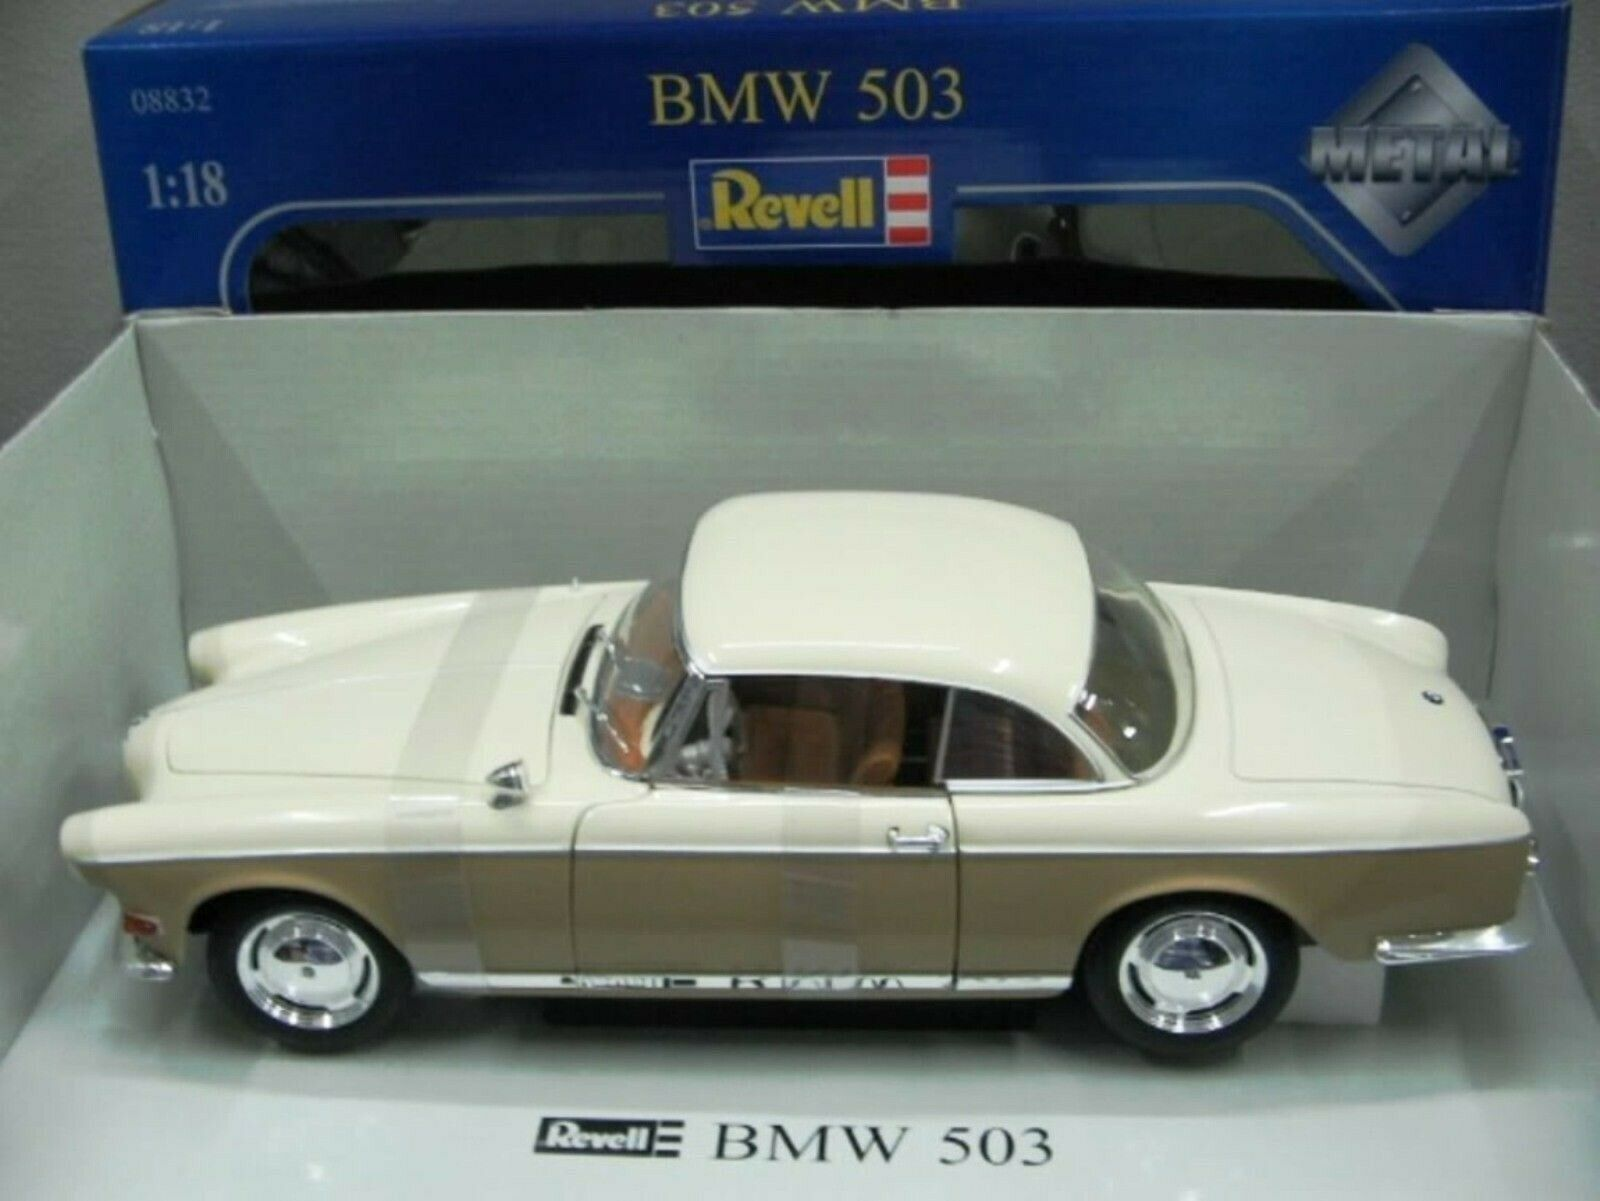 WOW EXTREMELY RARE BMW 503 Coupe 3.2 V8 Two Tone Cream Beige 1 18 Revell-502 507